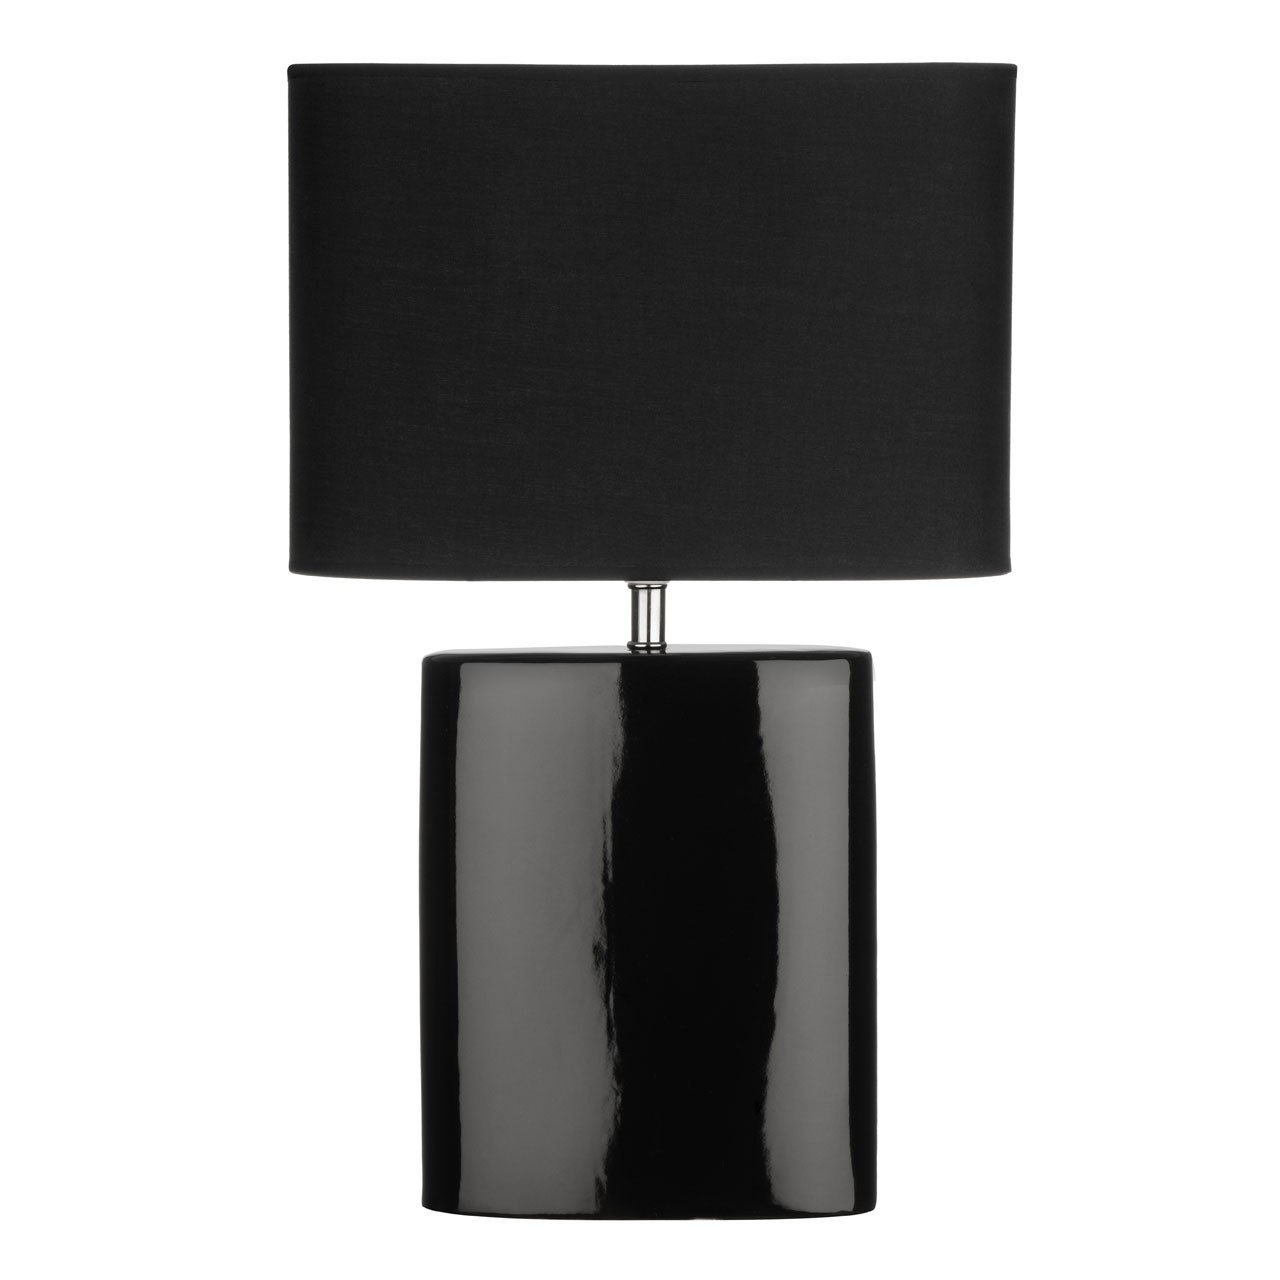 2 x Ellipse Table Lamp, Black Ceramic Base, Black Fabric Shade